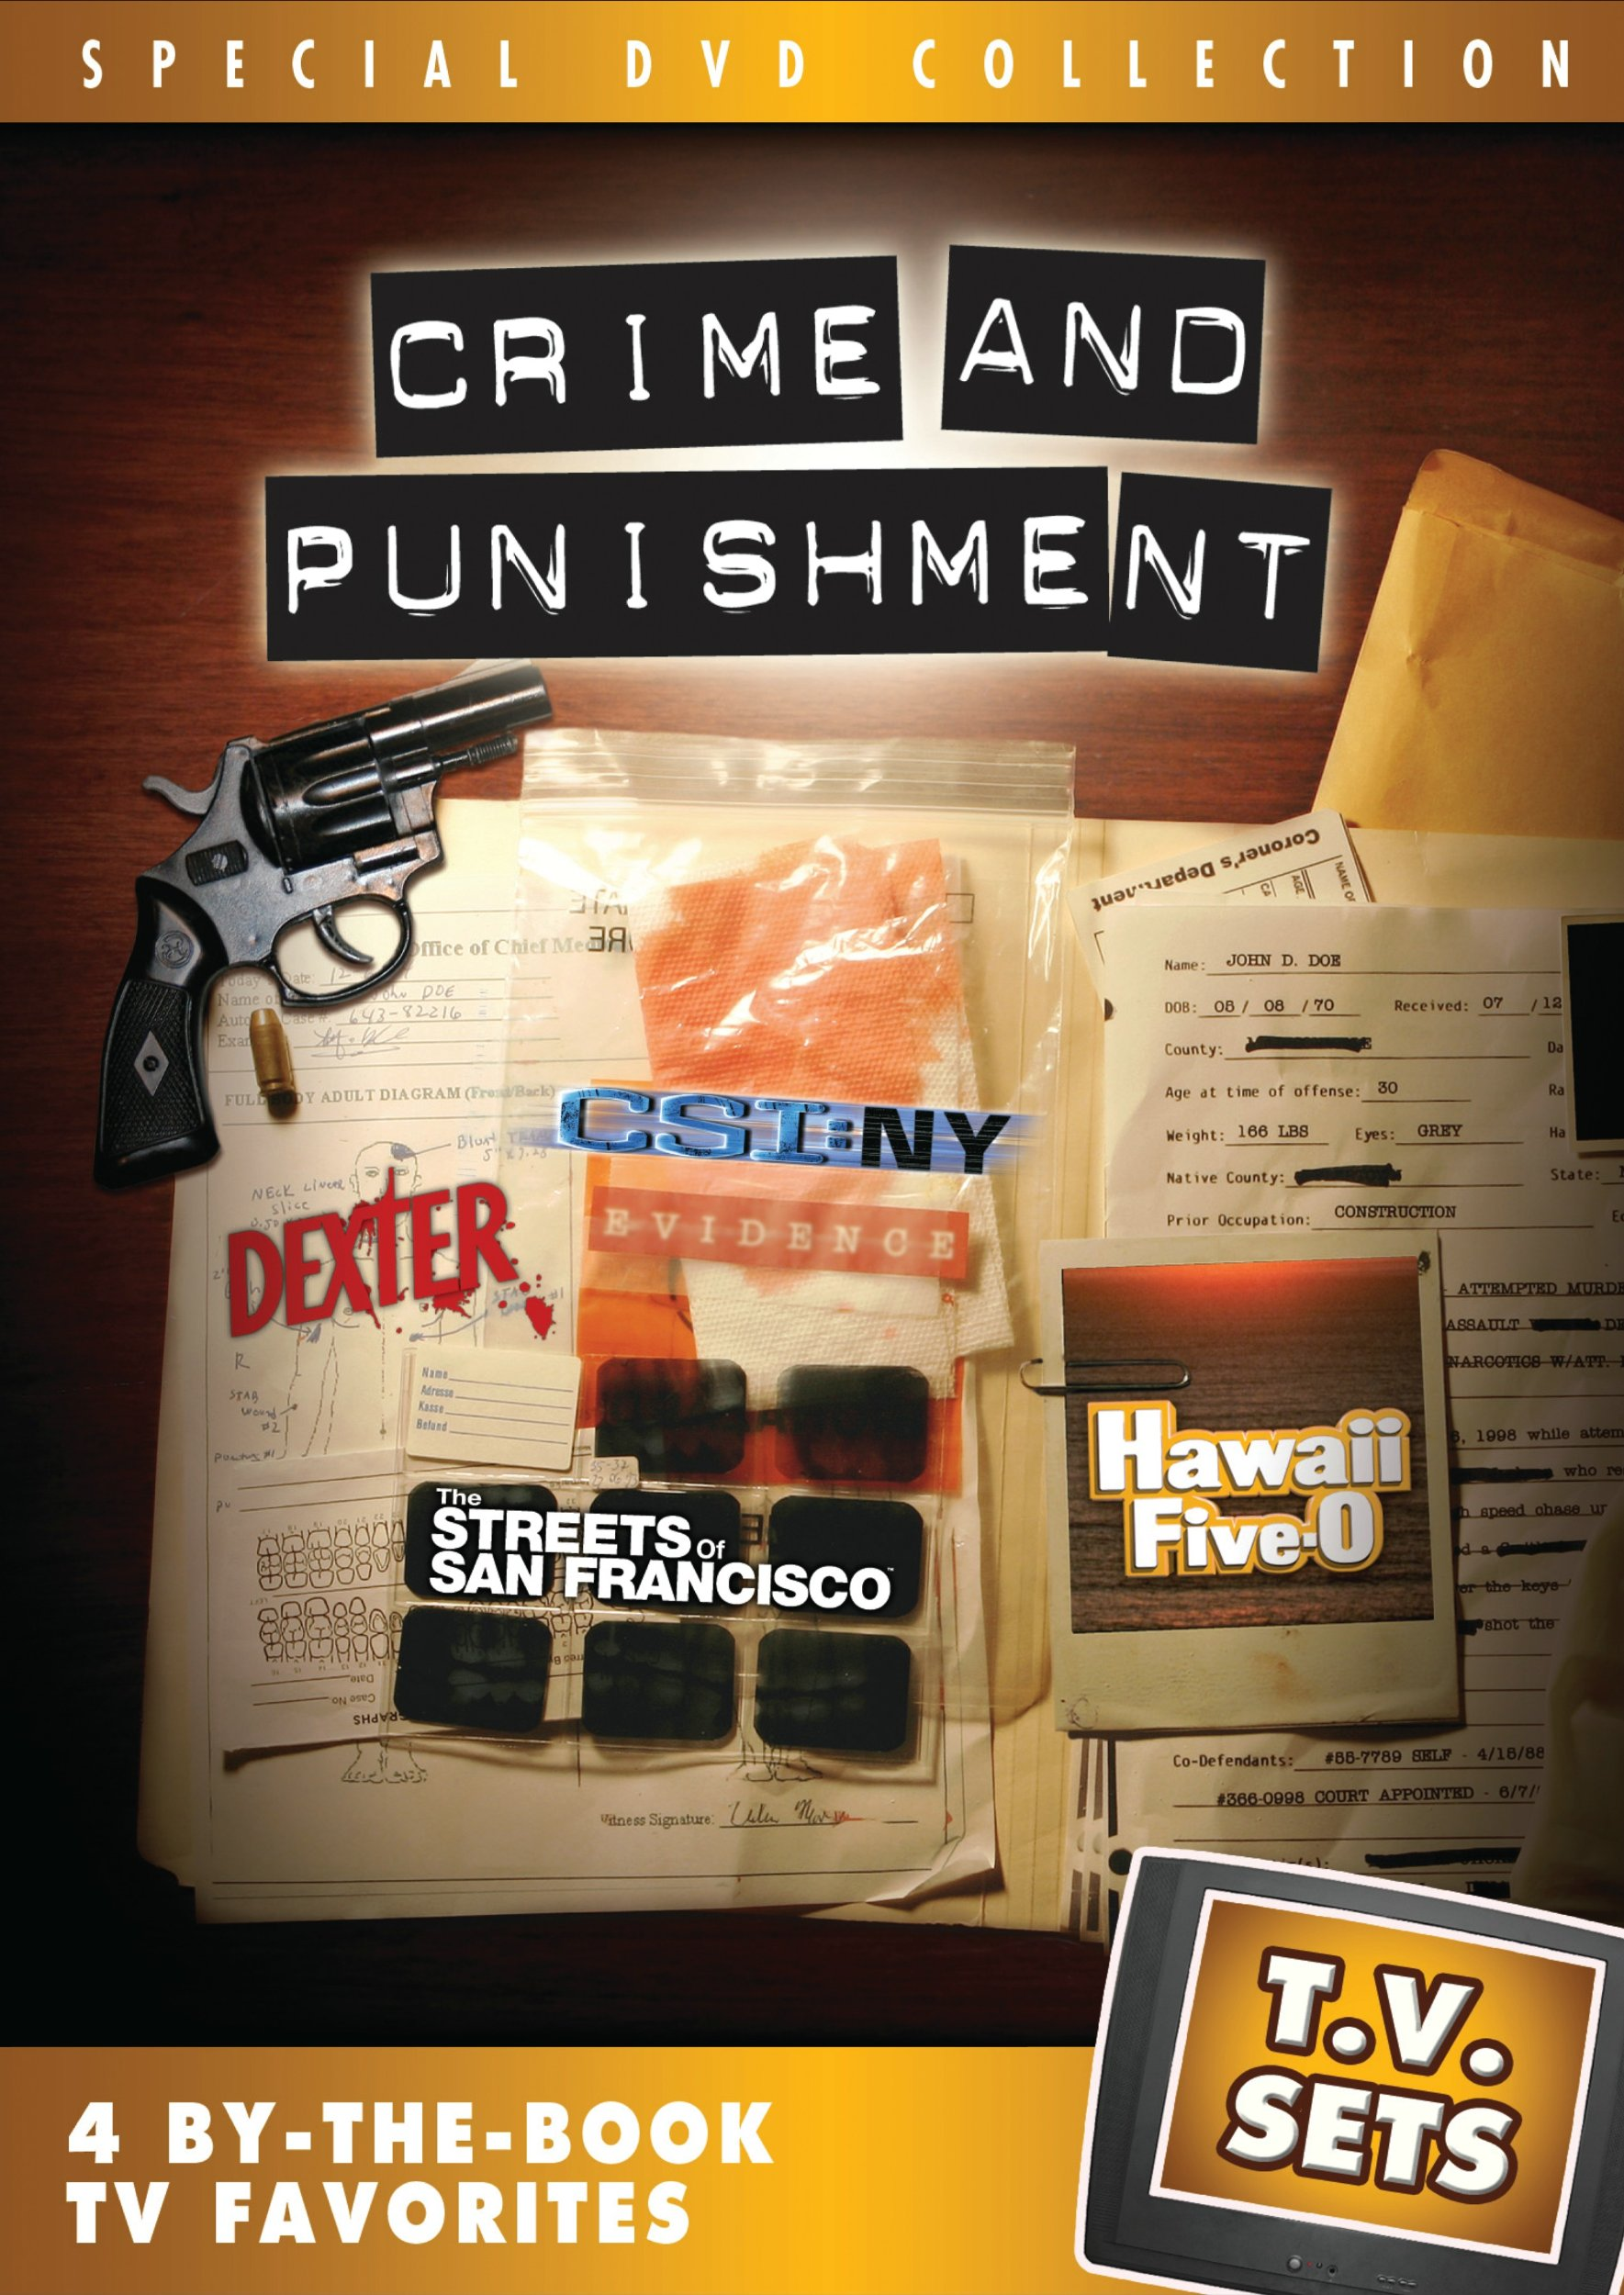 DVD : T.v. Sets: Crime And Punishment (Full Frame, Widescreen, Dolby, AC-3)